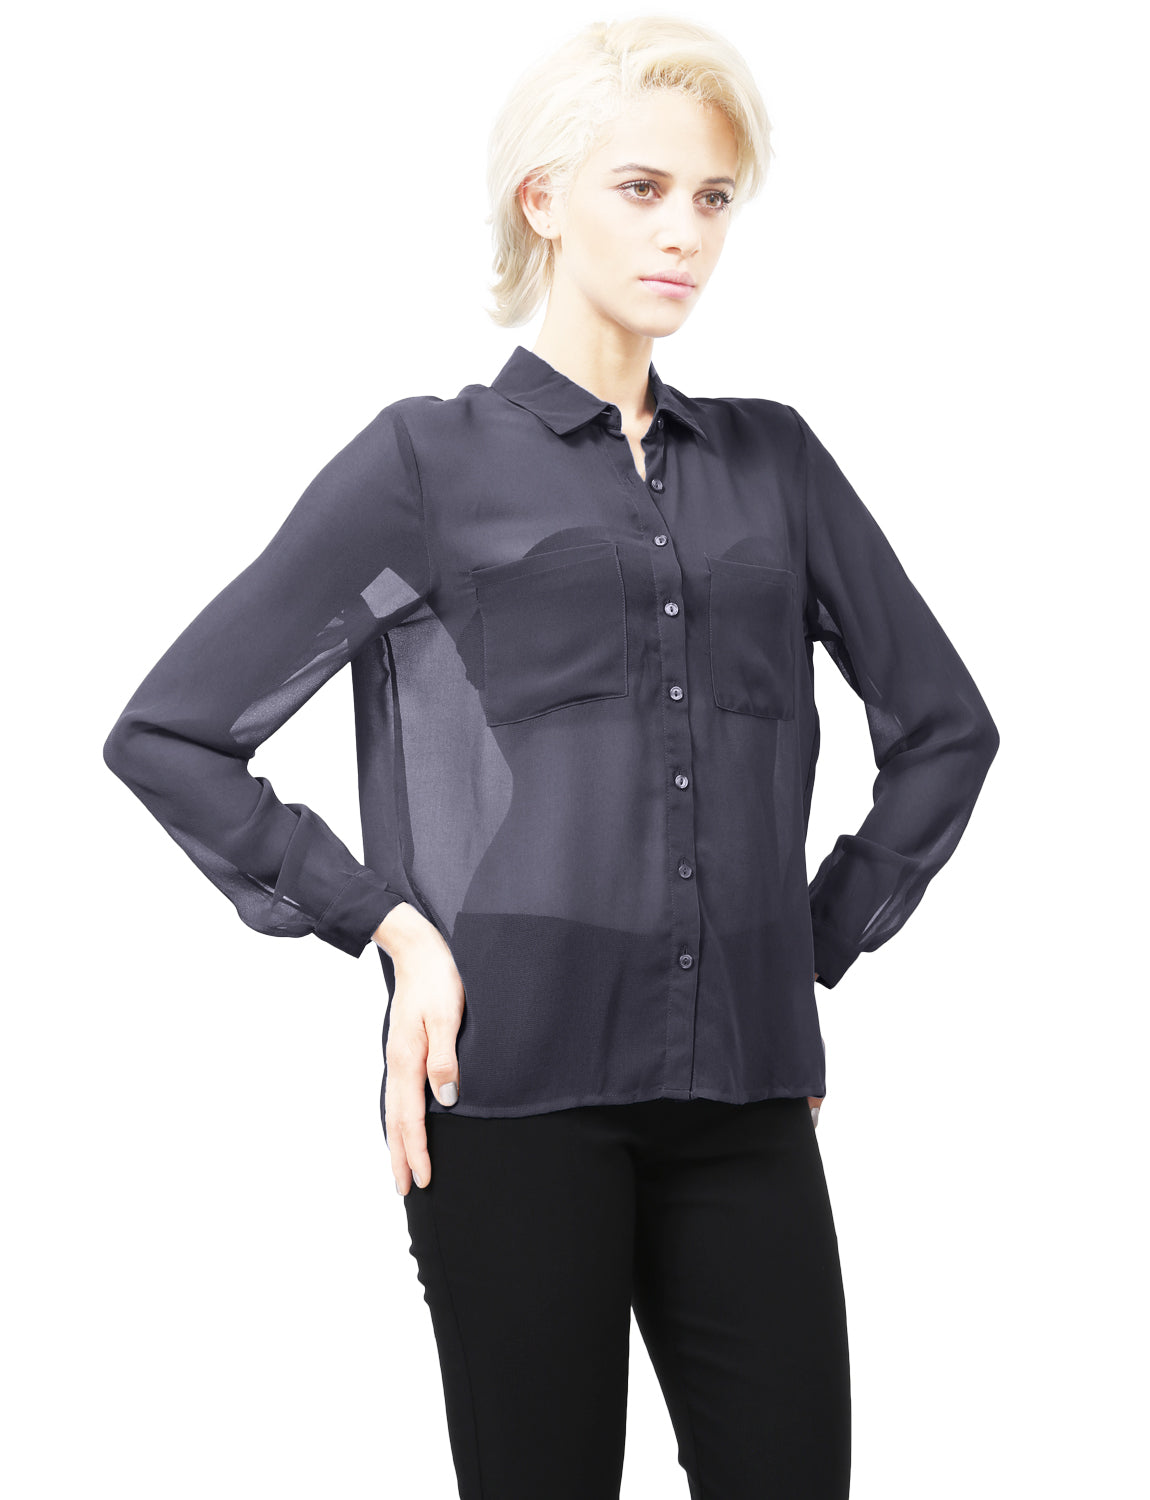 fe270da96 SHEER CHIFFON LONG SLEEVE BUTTON DOWN BLOUSE WITH CHEST POCKETS - NE ...